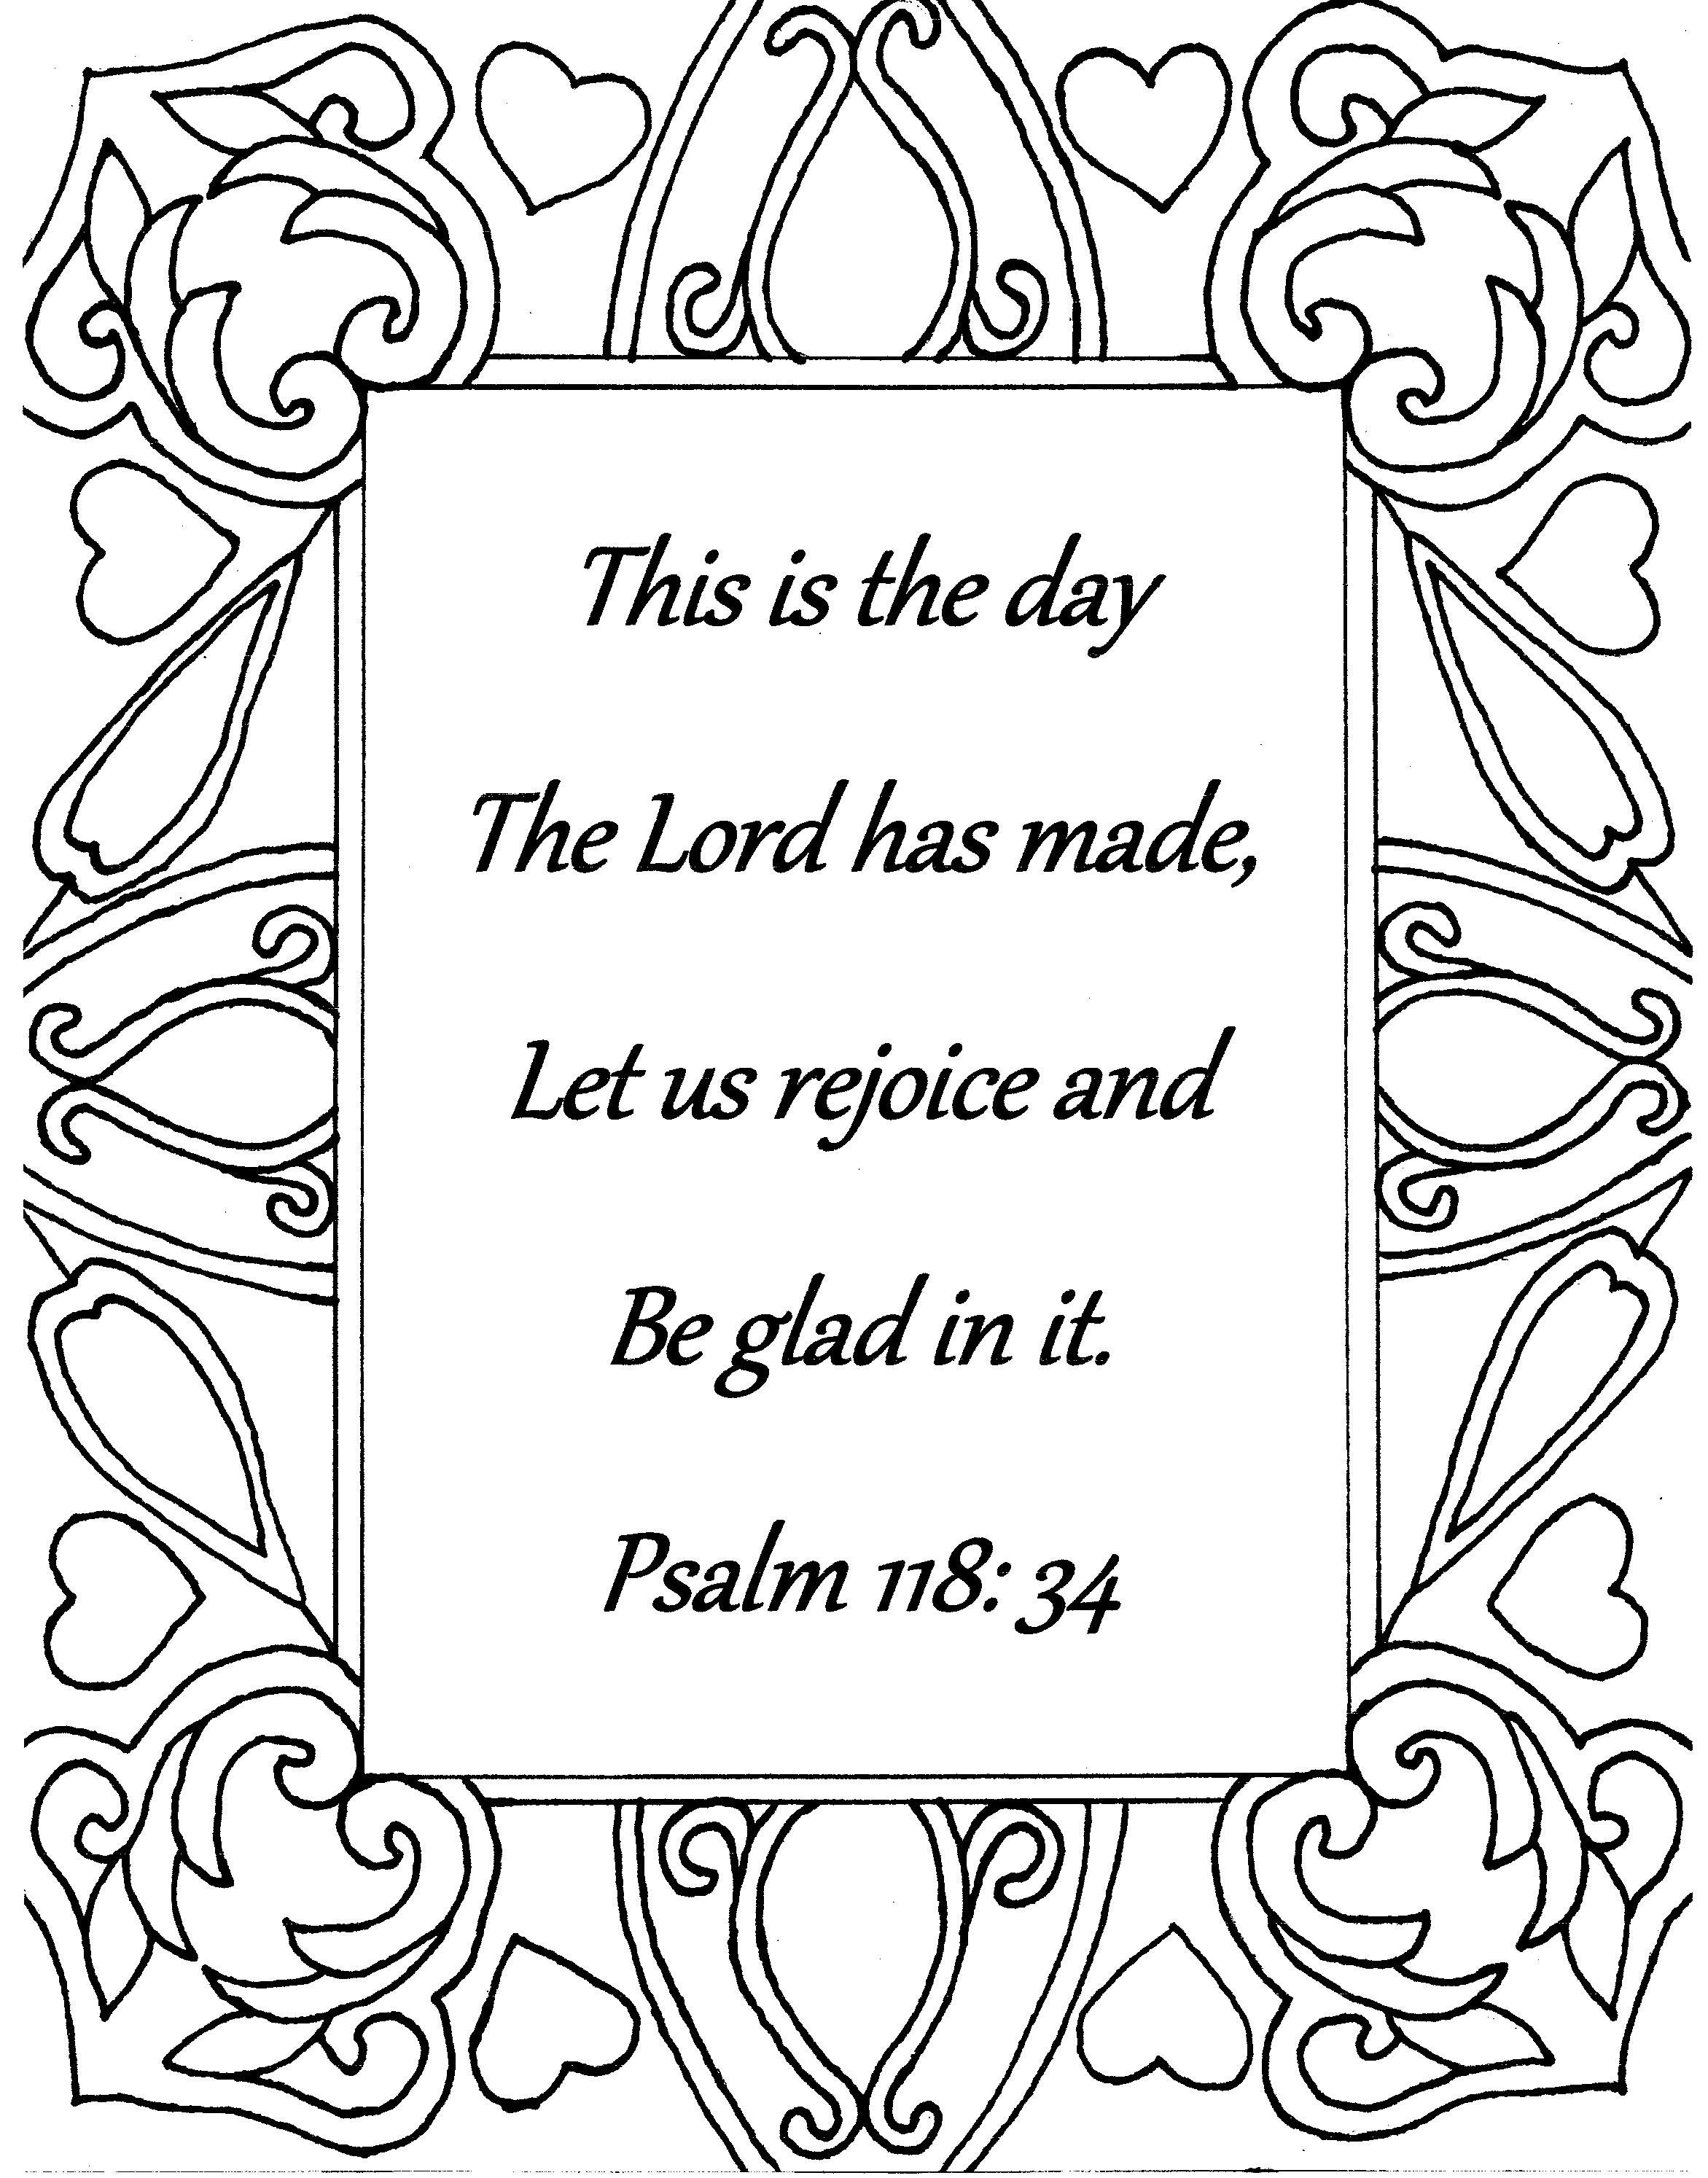 This Is The Day The Lord Has Made Psalms 118 34 Bible Verse